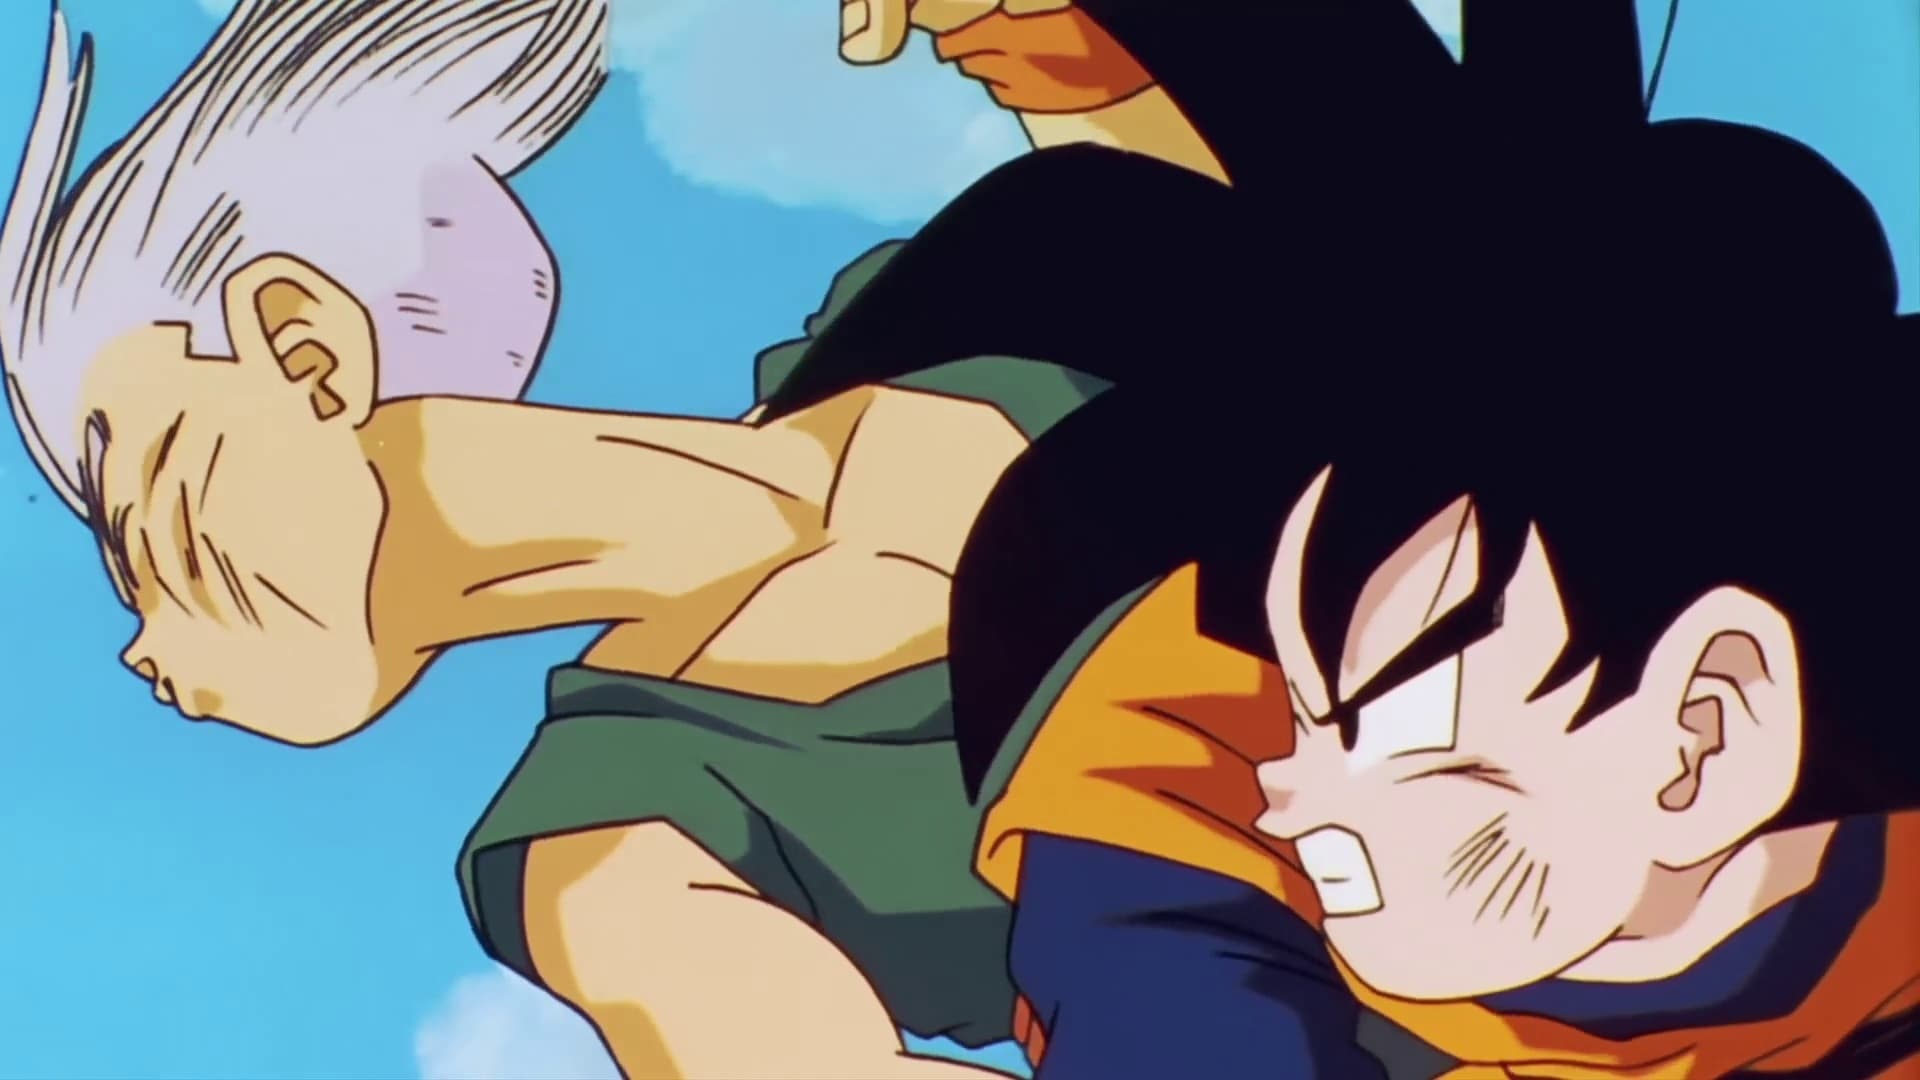 Dragon Ball Z Kai Season 5 :Episode 5  Everyone is Surprised! Goten and Trunks' Super Battle!